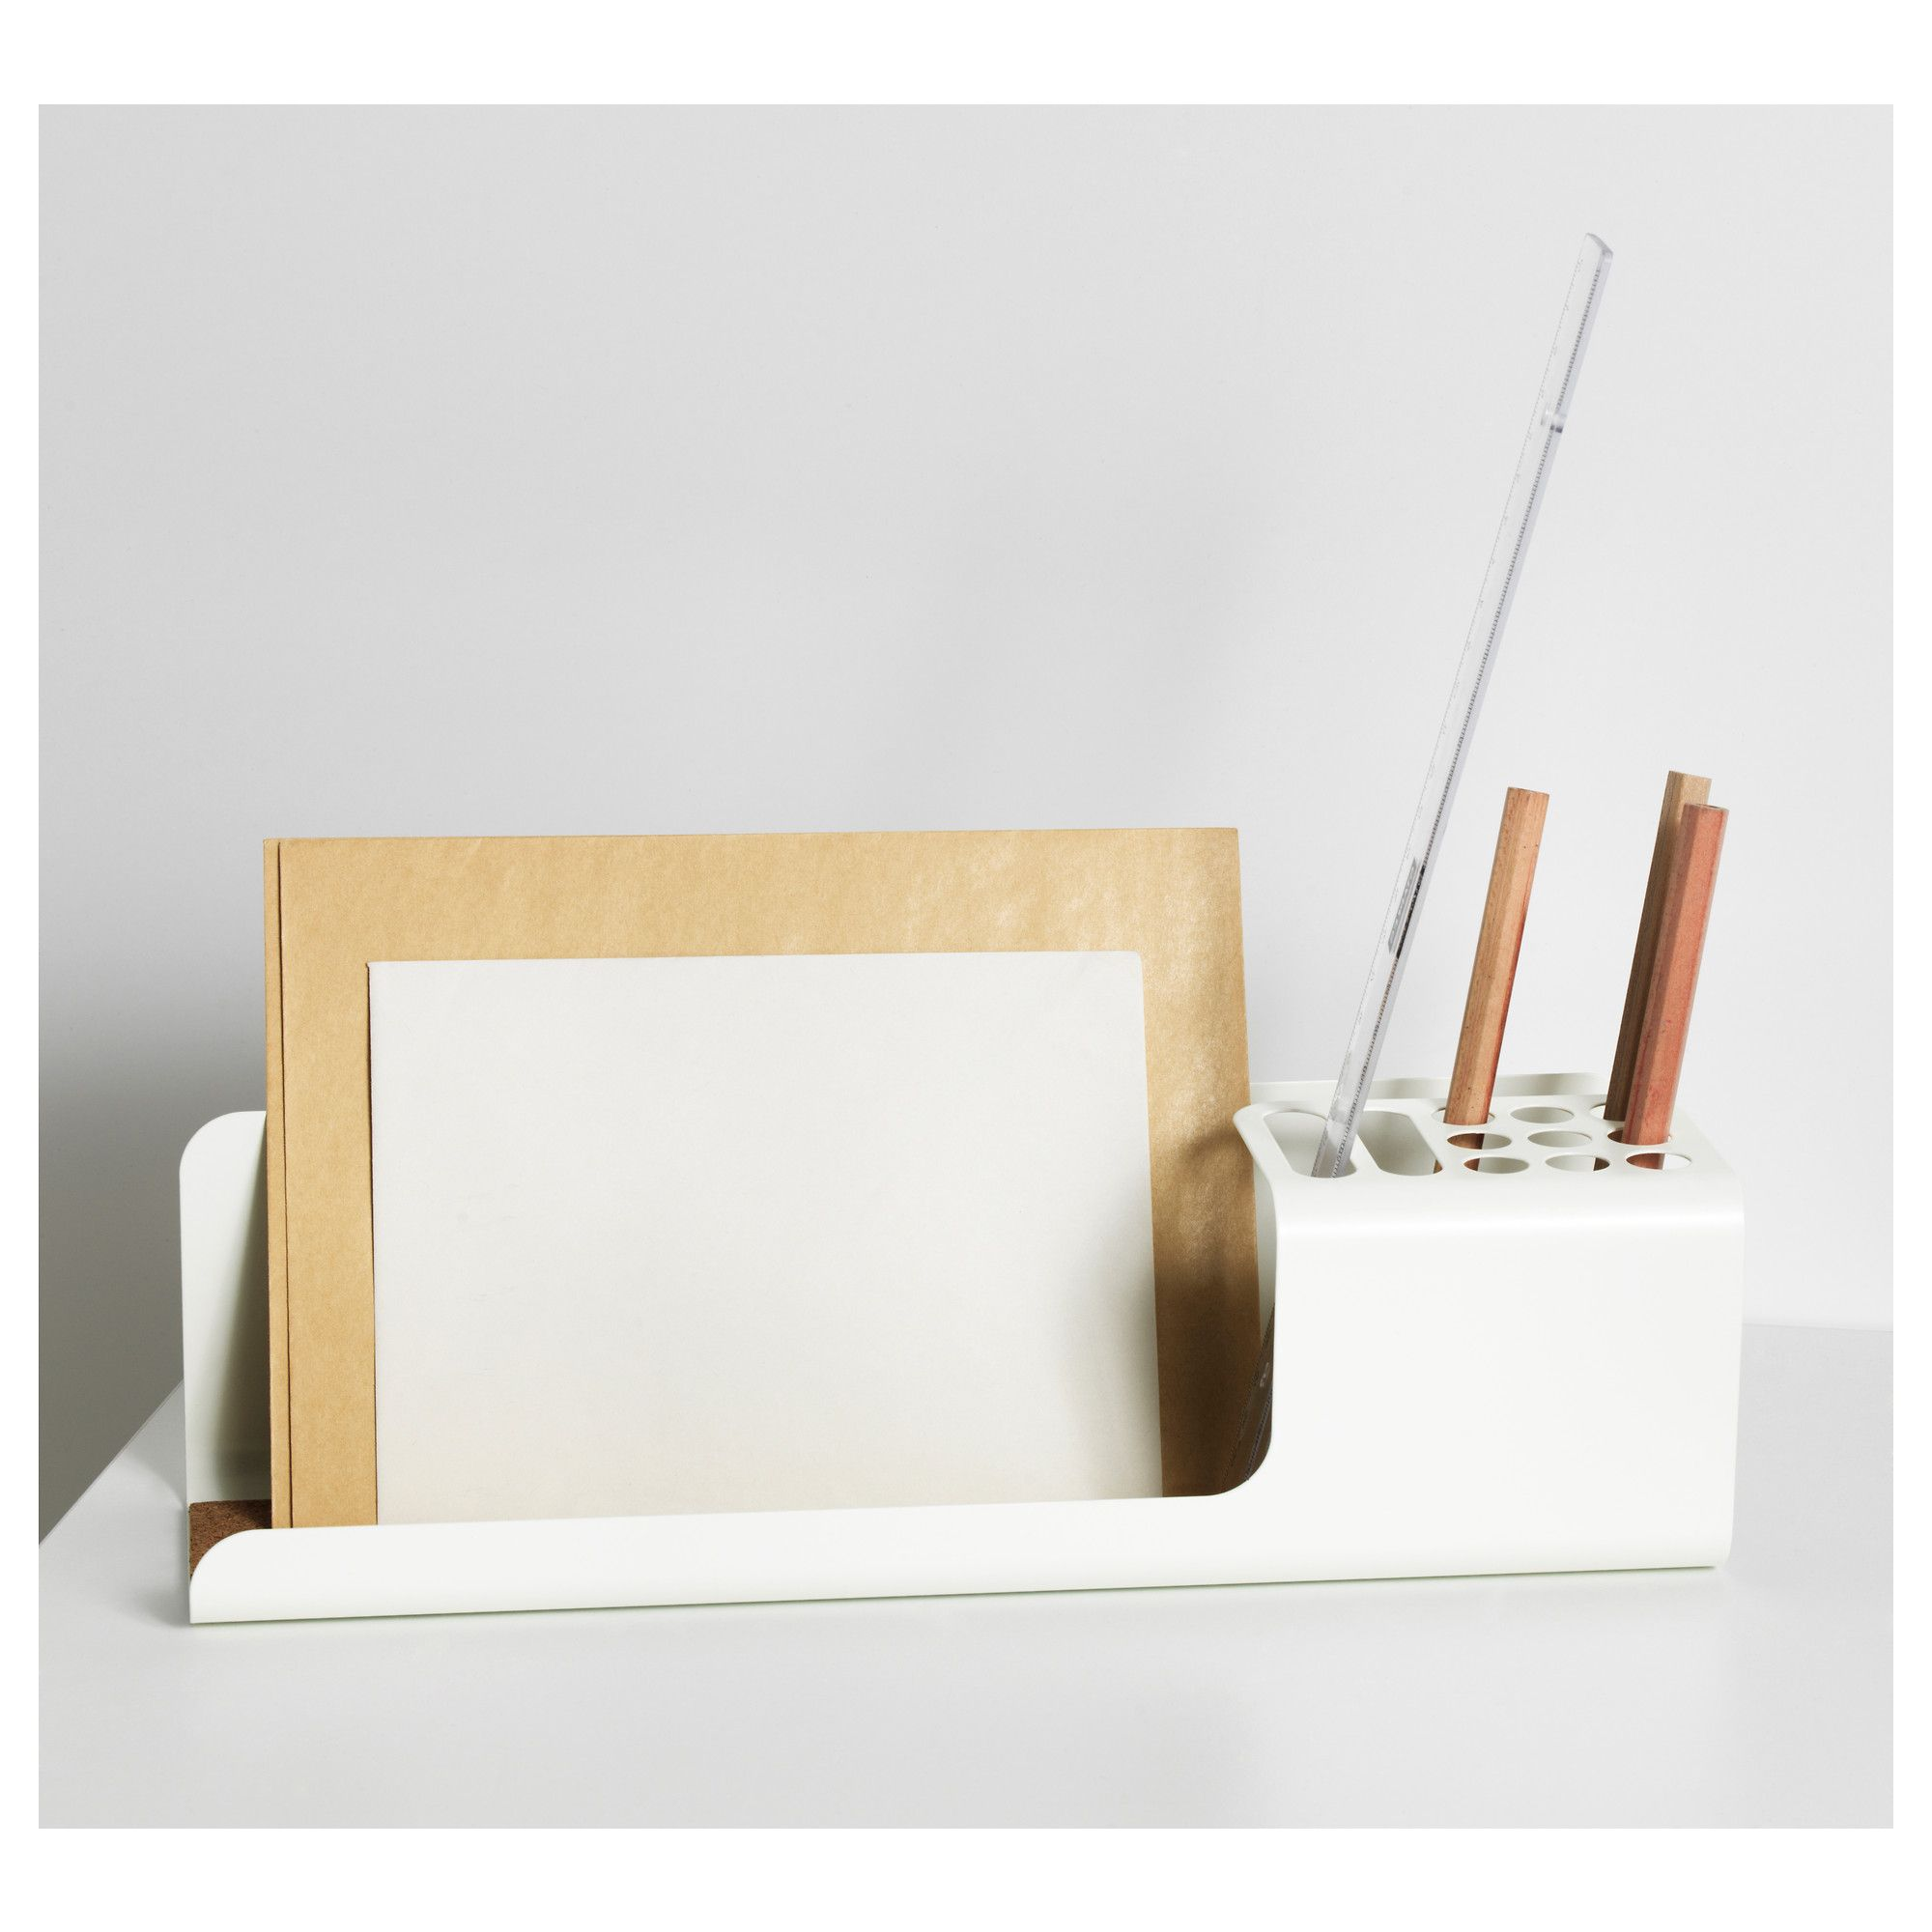 Ikea Bank Accessoires Ikea Kvissle Desk Organizer White Powder Coated Steel And